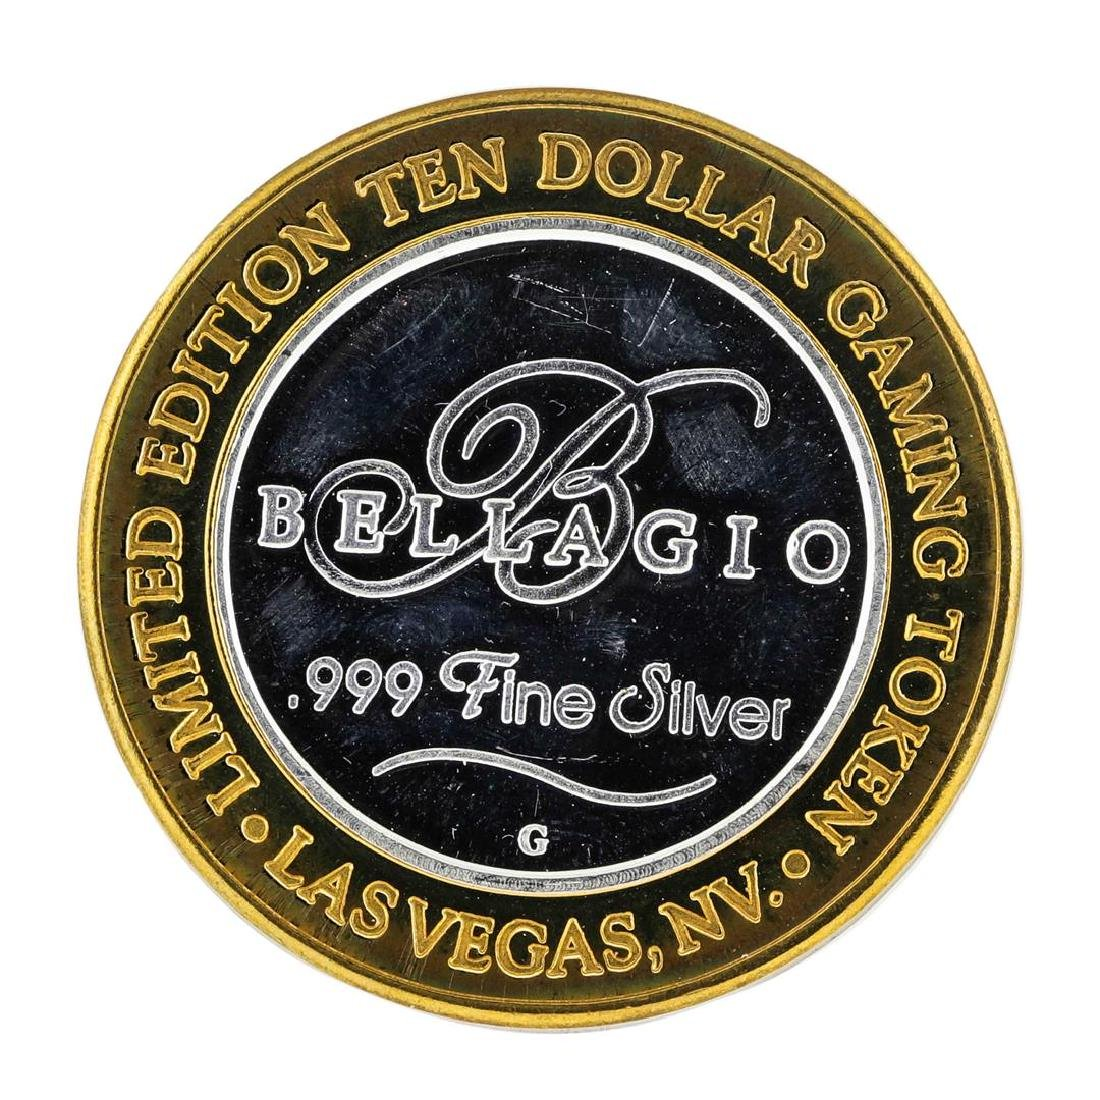 .999 Silver Bellagio Las Vegas, NV $10 Casino Limited